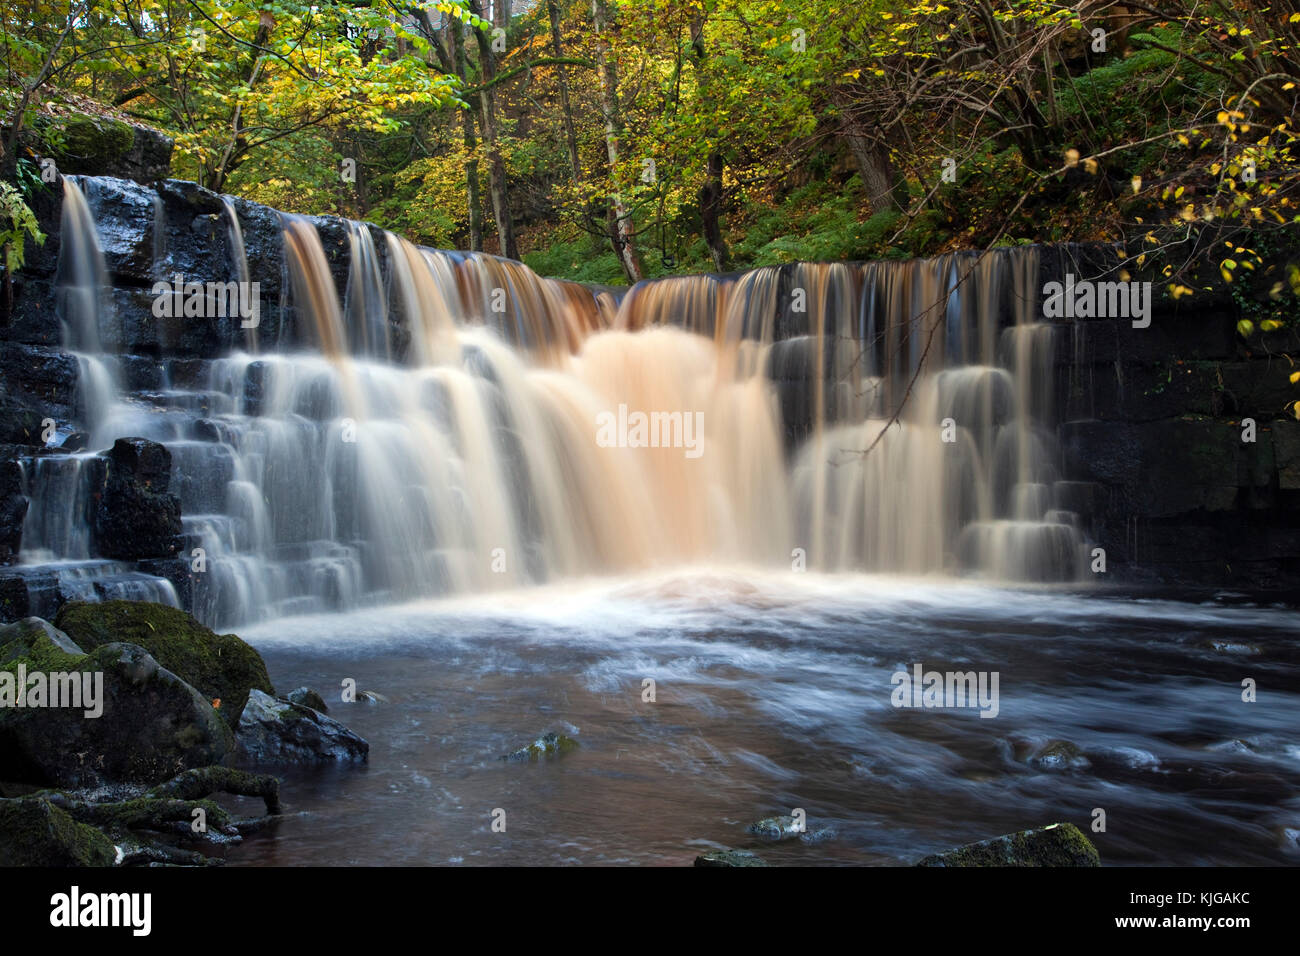 Waterfall on Whitfield Gill near Helm Wensleydale Yorkshire Dales national park North Yorkshire - Stock Image